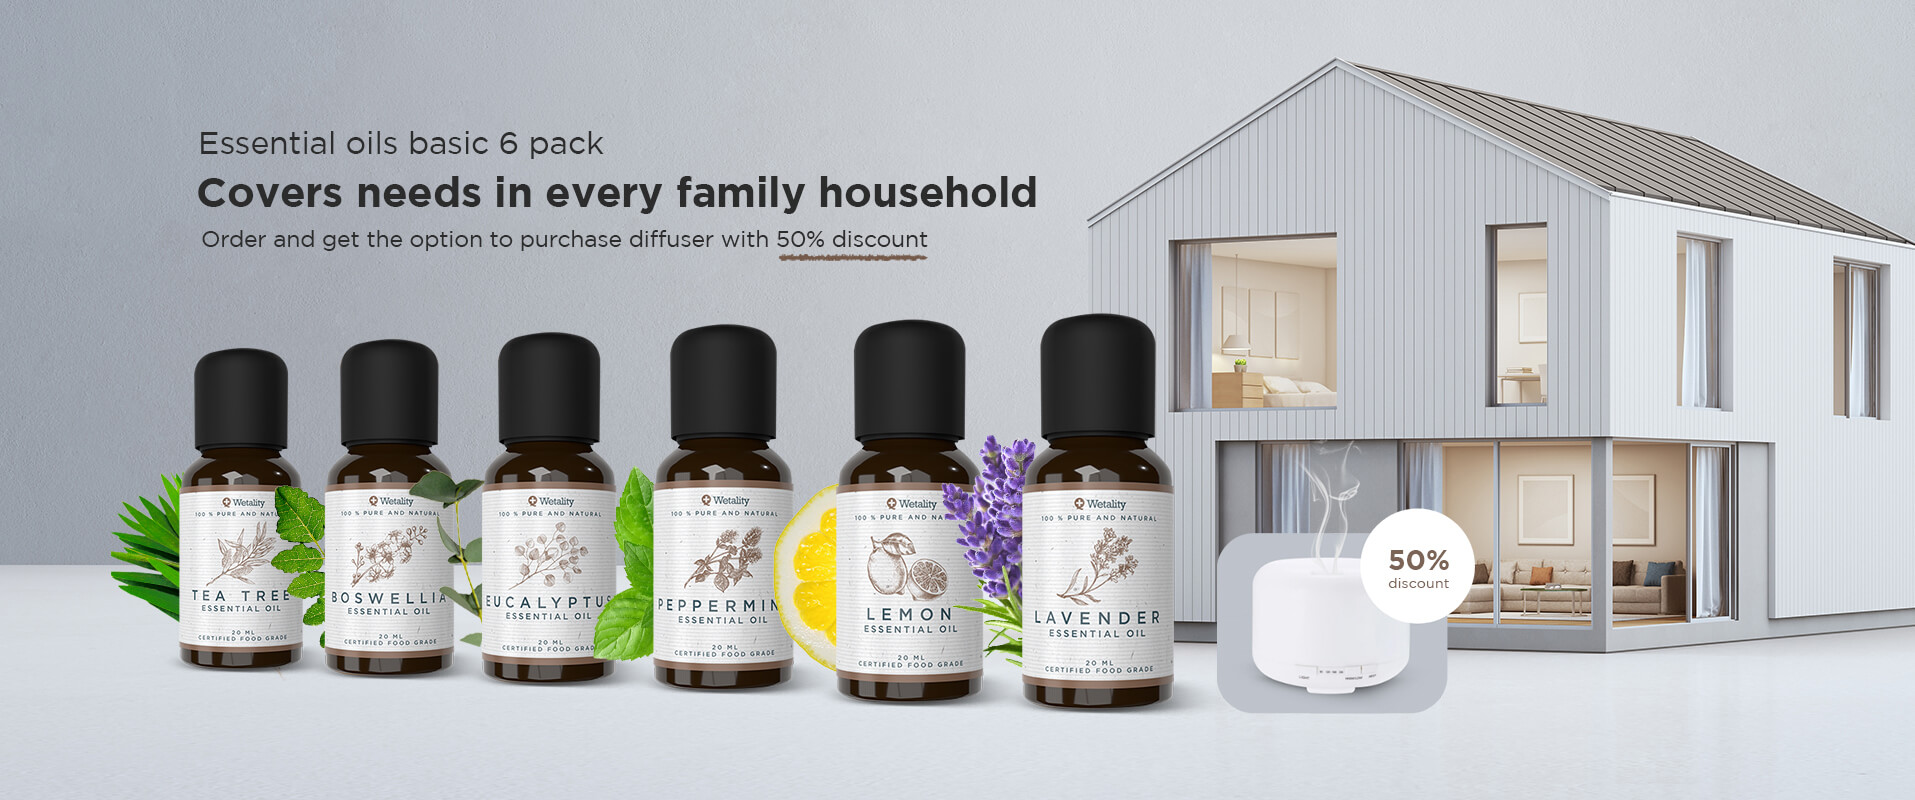 Wetality Essential Oils Basic 6pack